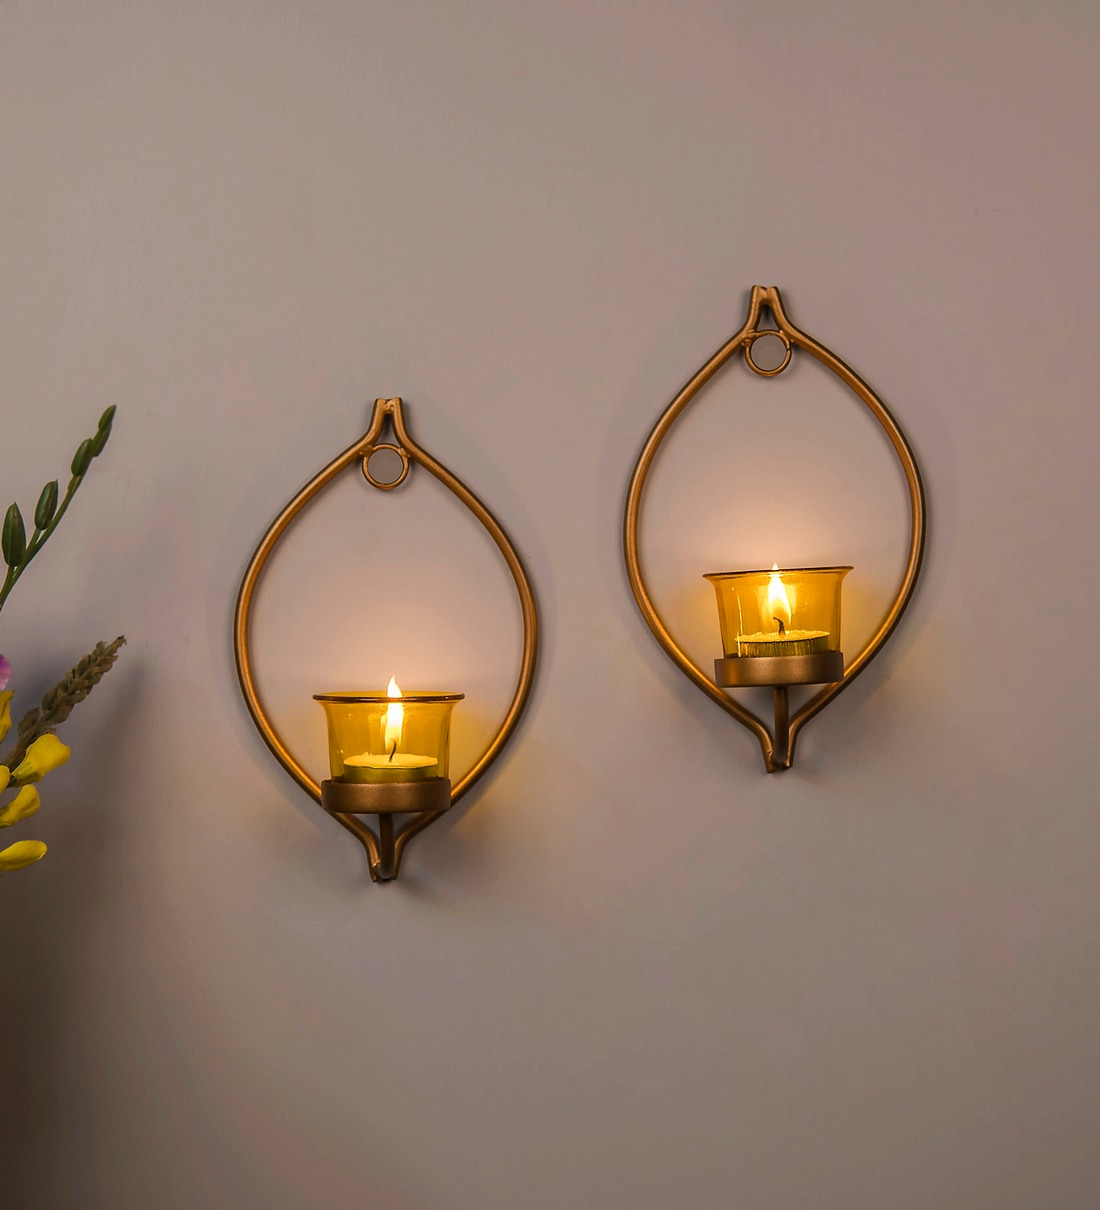 Buy Gold Metal Decorative Drop Wall Candle Holder With Glass And Free T Light Candles Set Of 2 By Homesake Online Wall Tea Light Holder Festive Lights Lamps Lighting Pepperfry Product